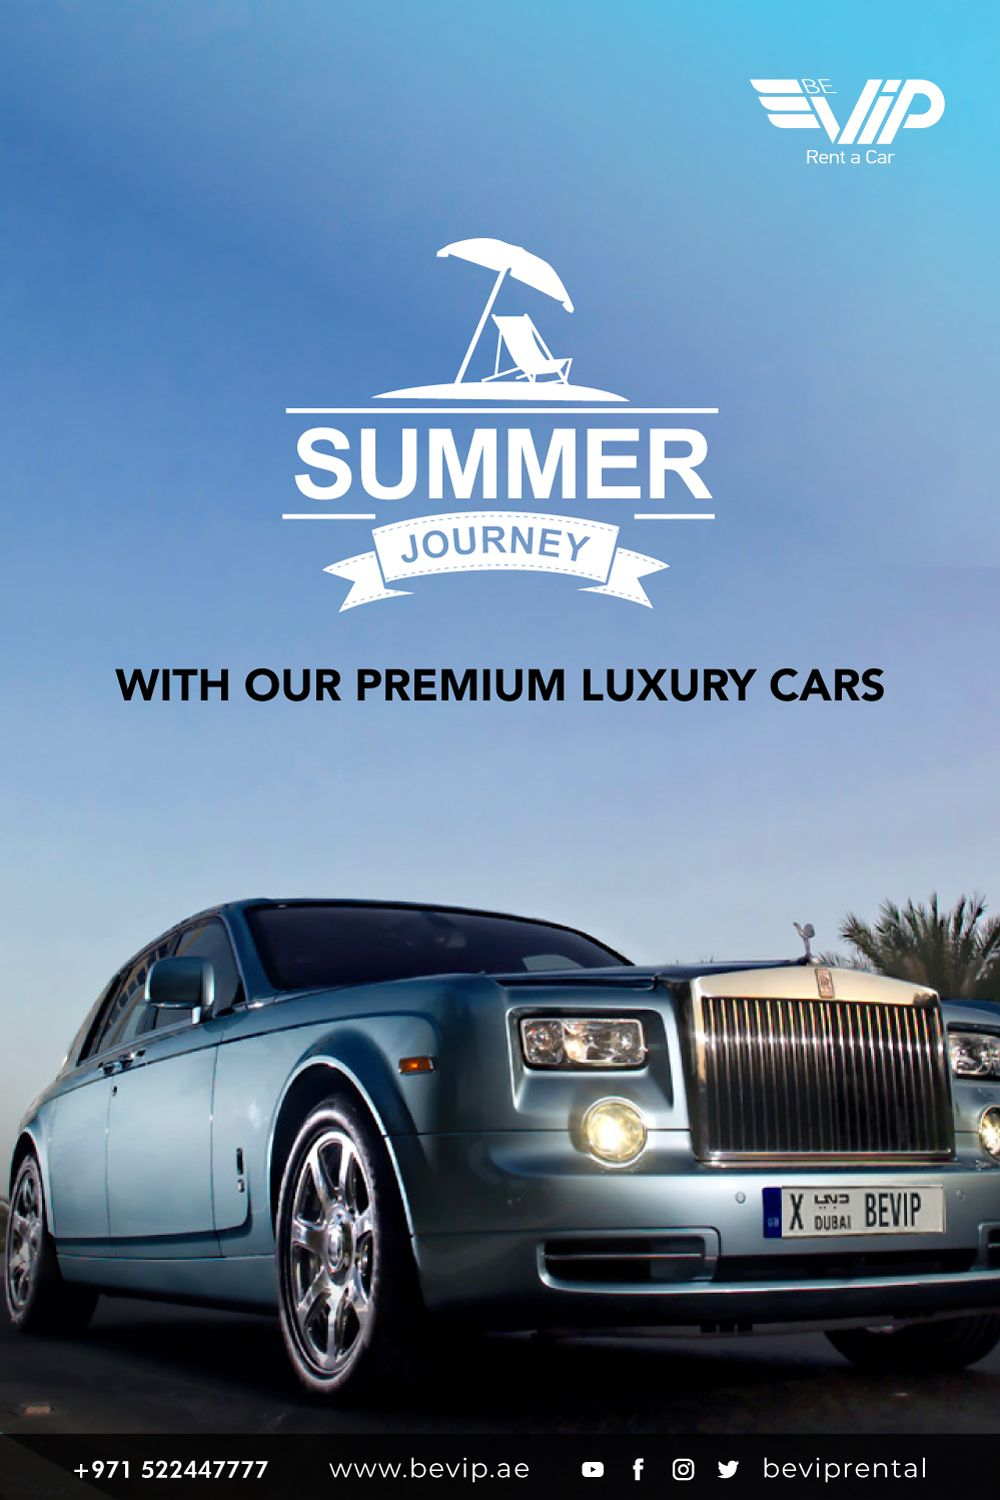 Luxury Car Rental In Dubai Luxury Car Rental Car Rental Car